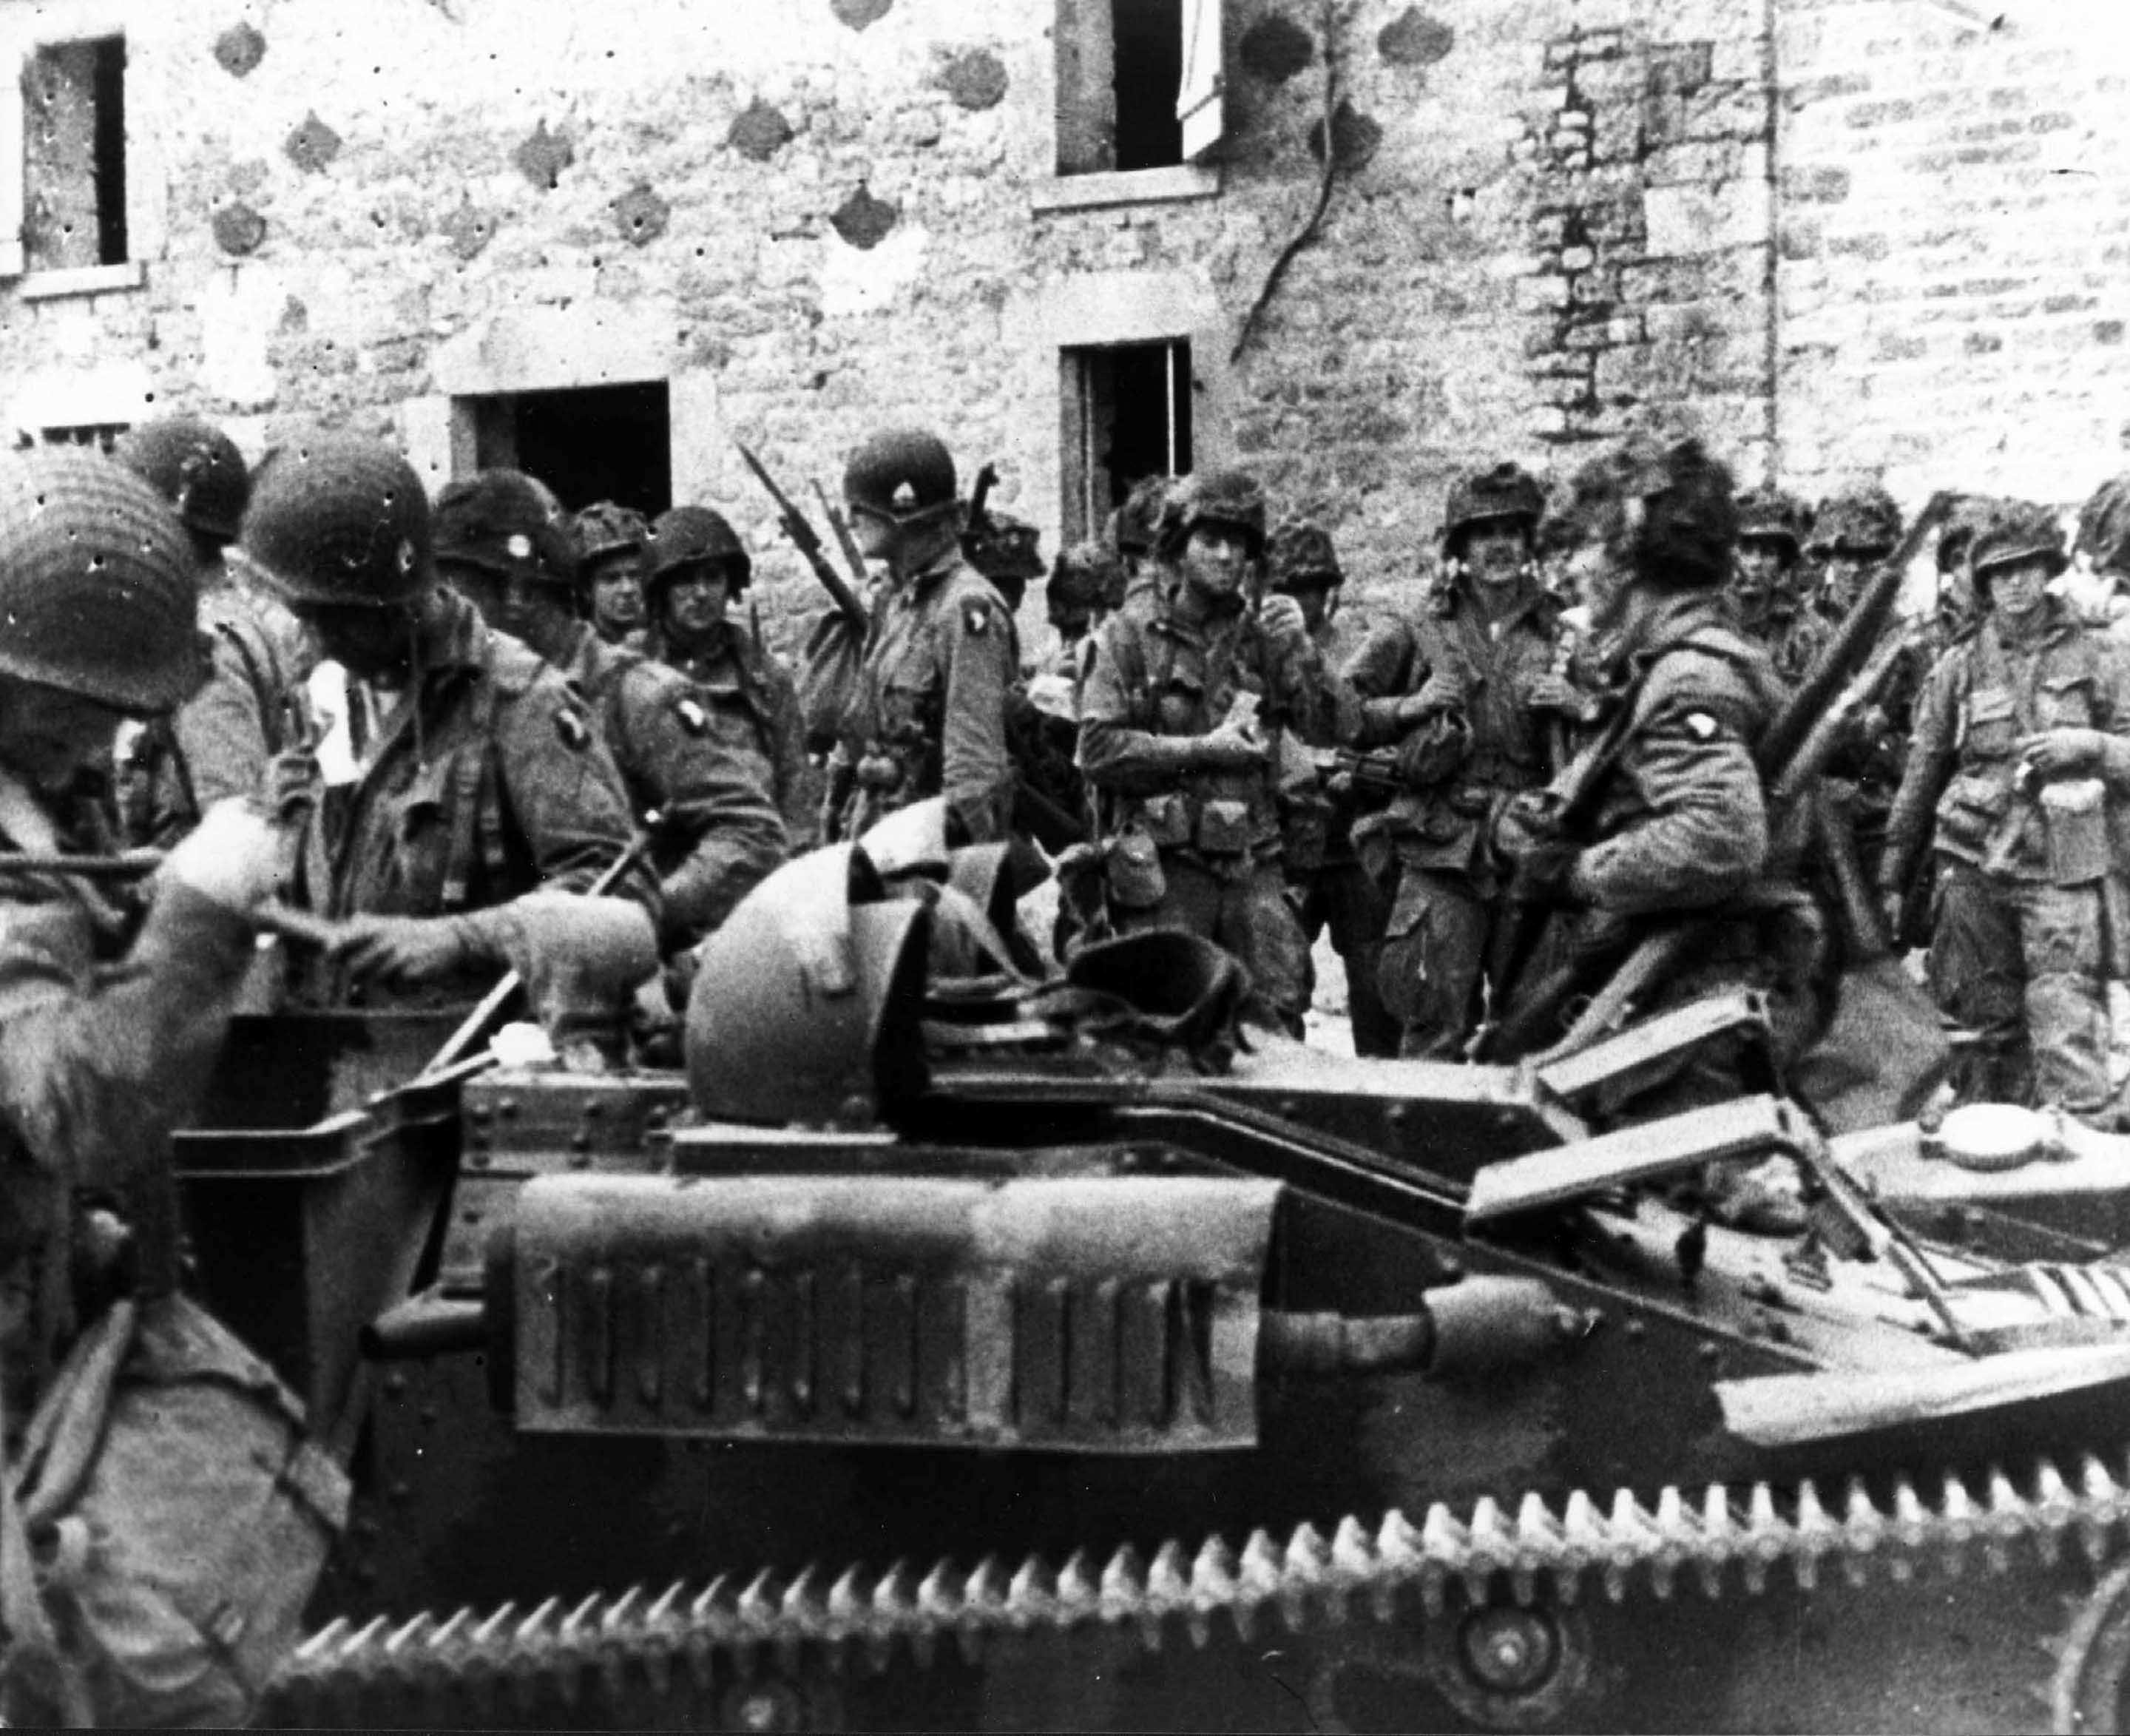 D Day Invasion Paratroopers The Normandy Invasion:...